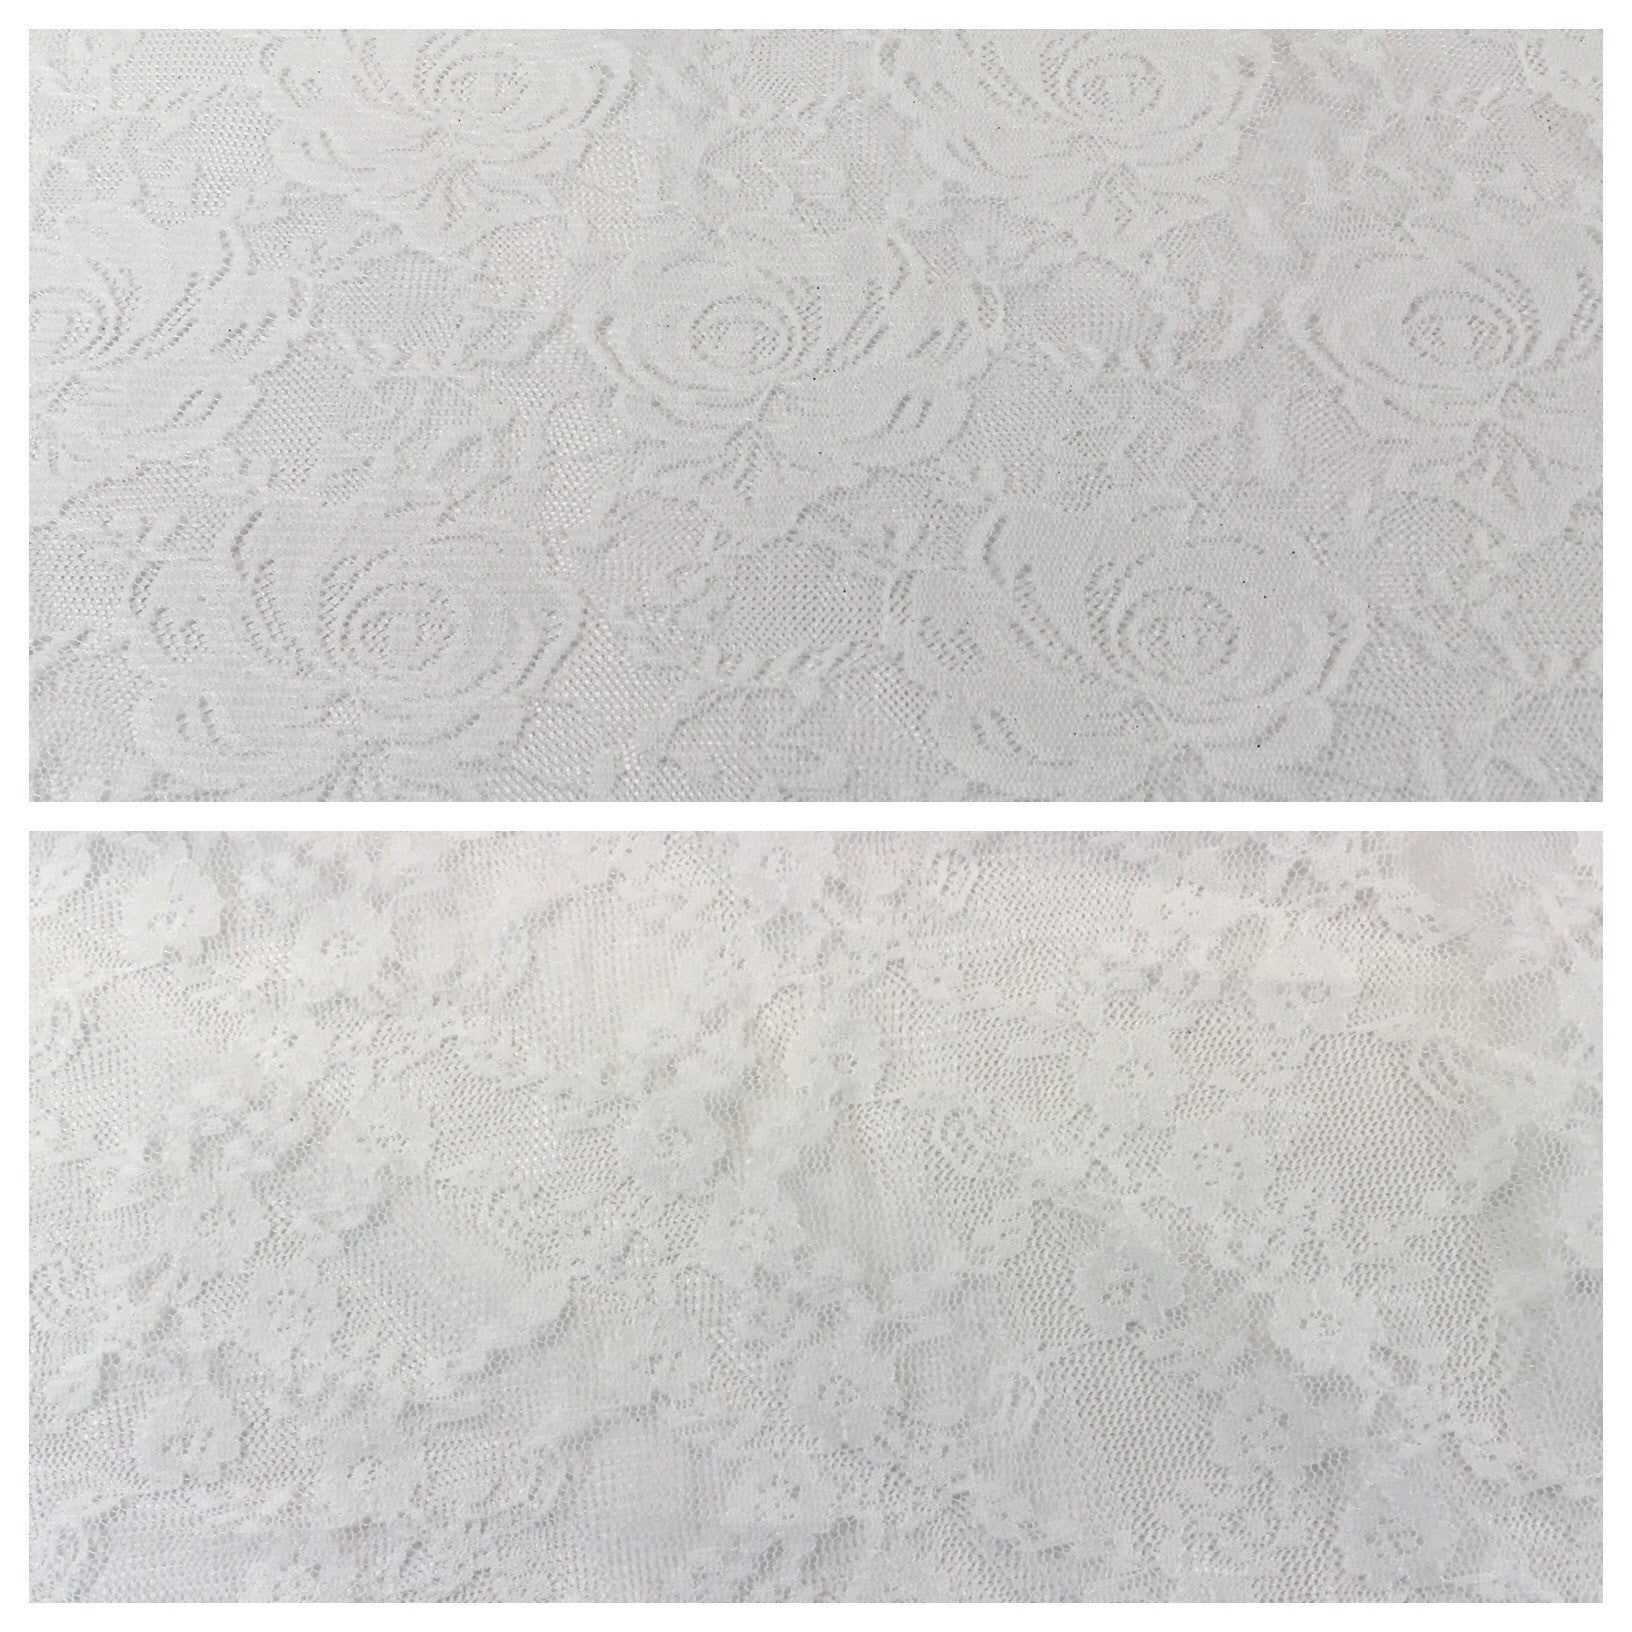 "Vintage floral off white Raschel stretch lace Dress fabric 55"" Wide M644 Mtex - Midland Textiles & Fabric"